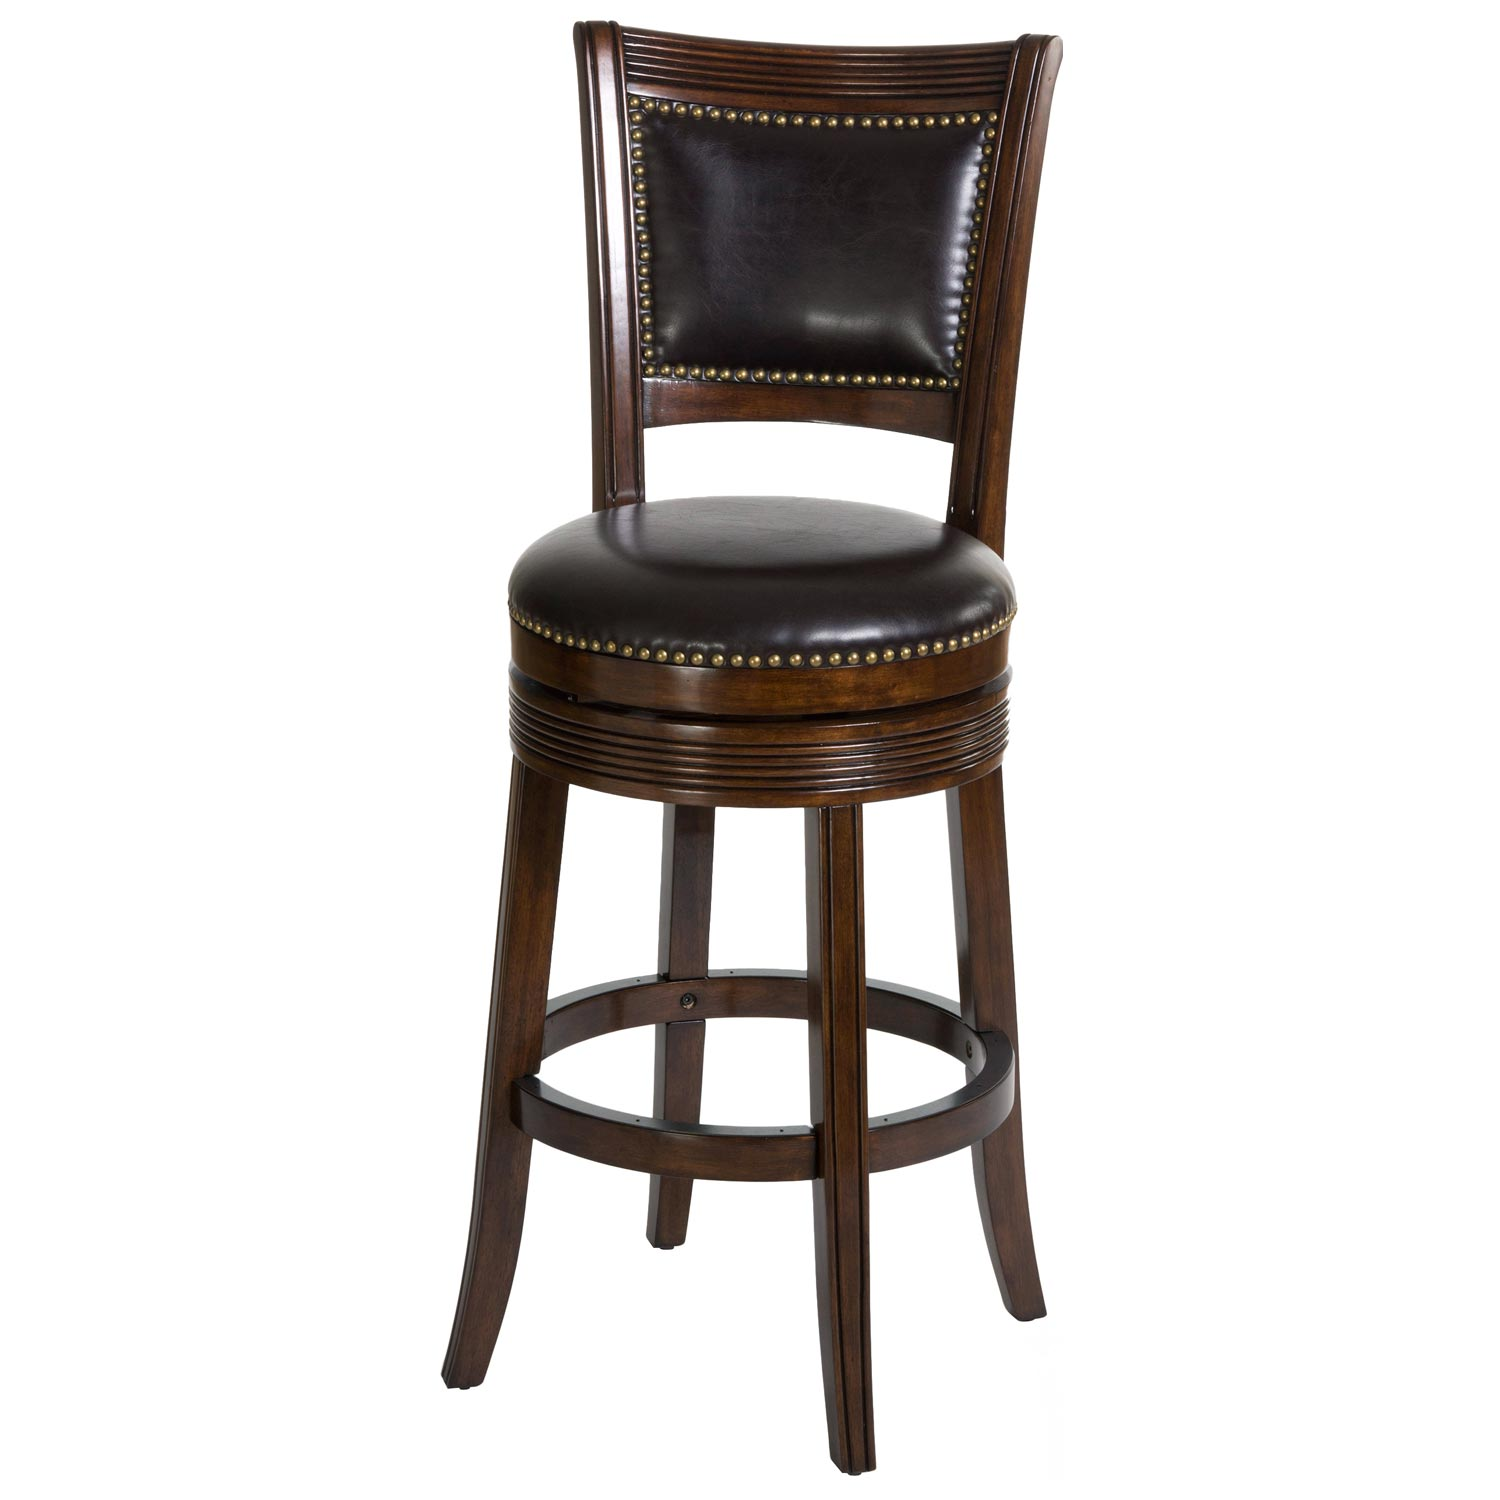 Lockefield 30quot Wooden Bar Stool Nail Heads Espresso  : 5221 831 from www.dcgstores.com size 500 x 500 jpeg 61kB